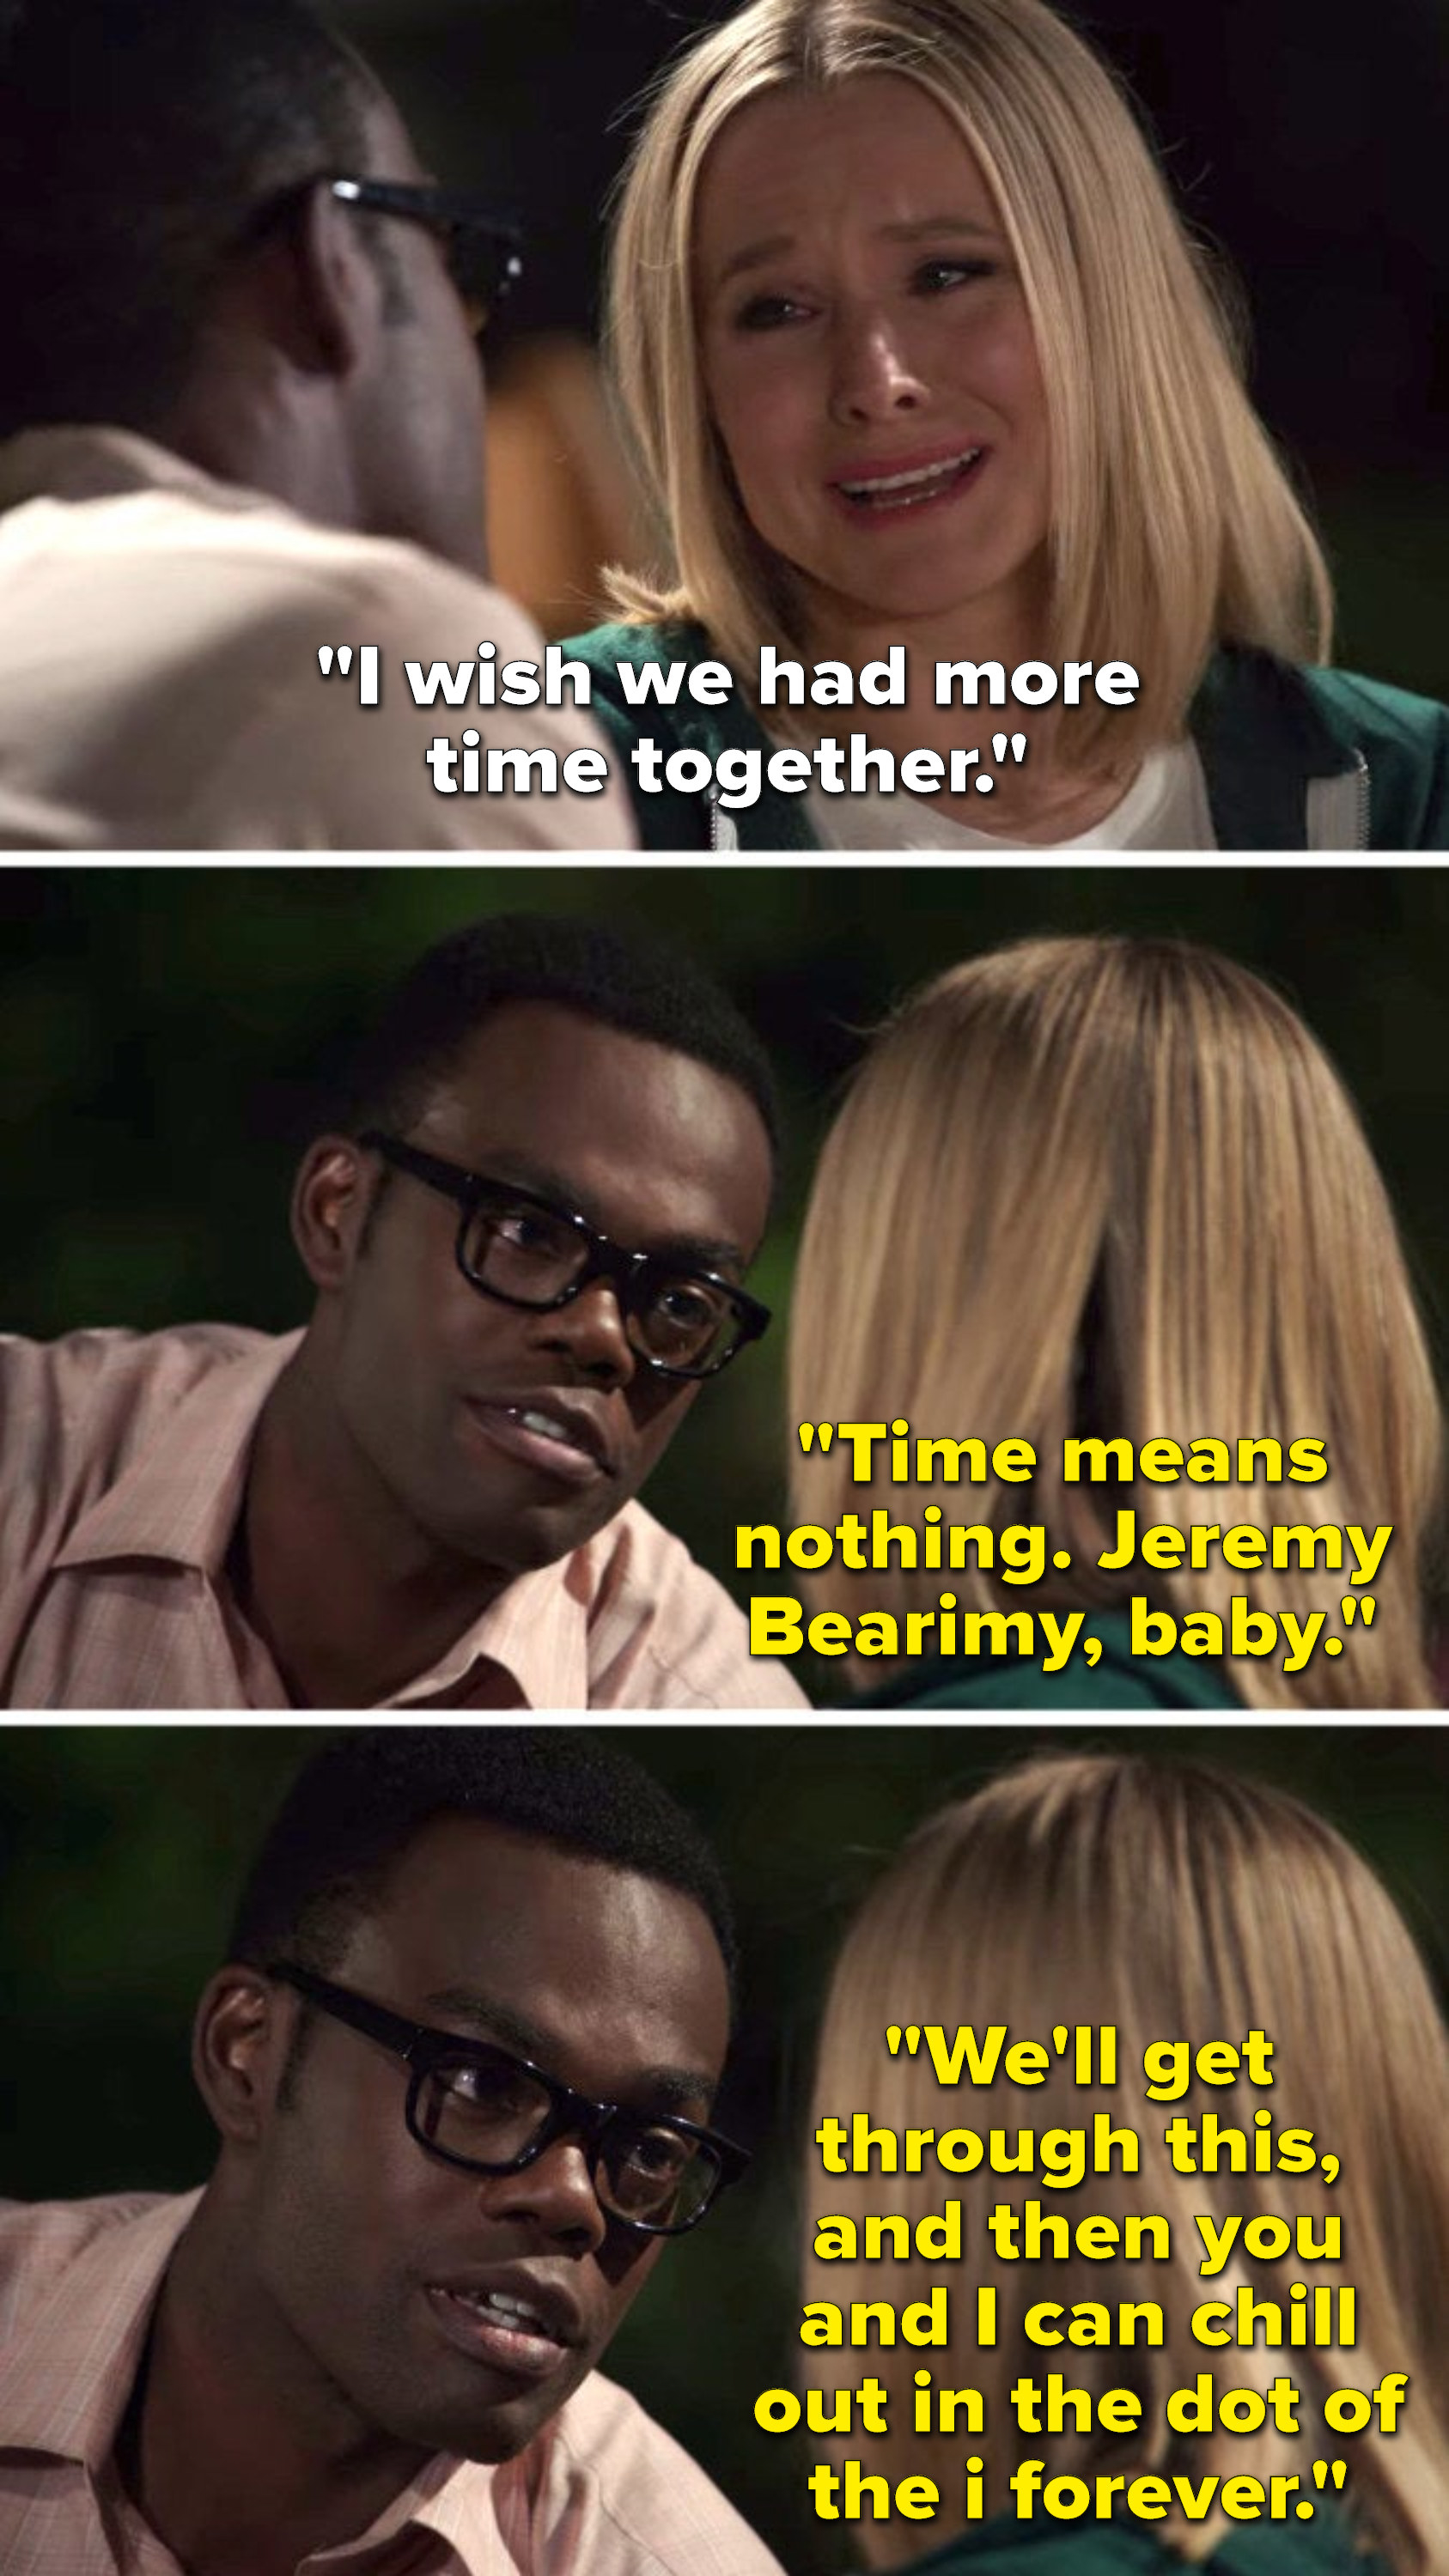 """On """"The Good Place"""", Eleanor says, """"I wish we had more time together,"""" and Chidi says, """"Time means nothing, Jeremy Bearimy, baby, we'll get through this, and then you and I can chill out in the dot of the i forever"""""""